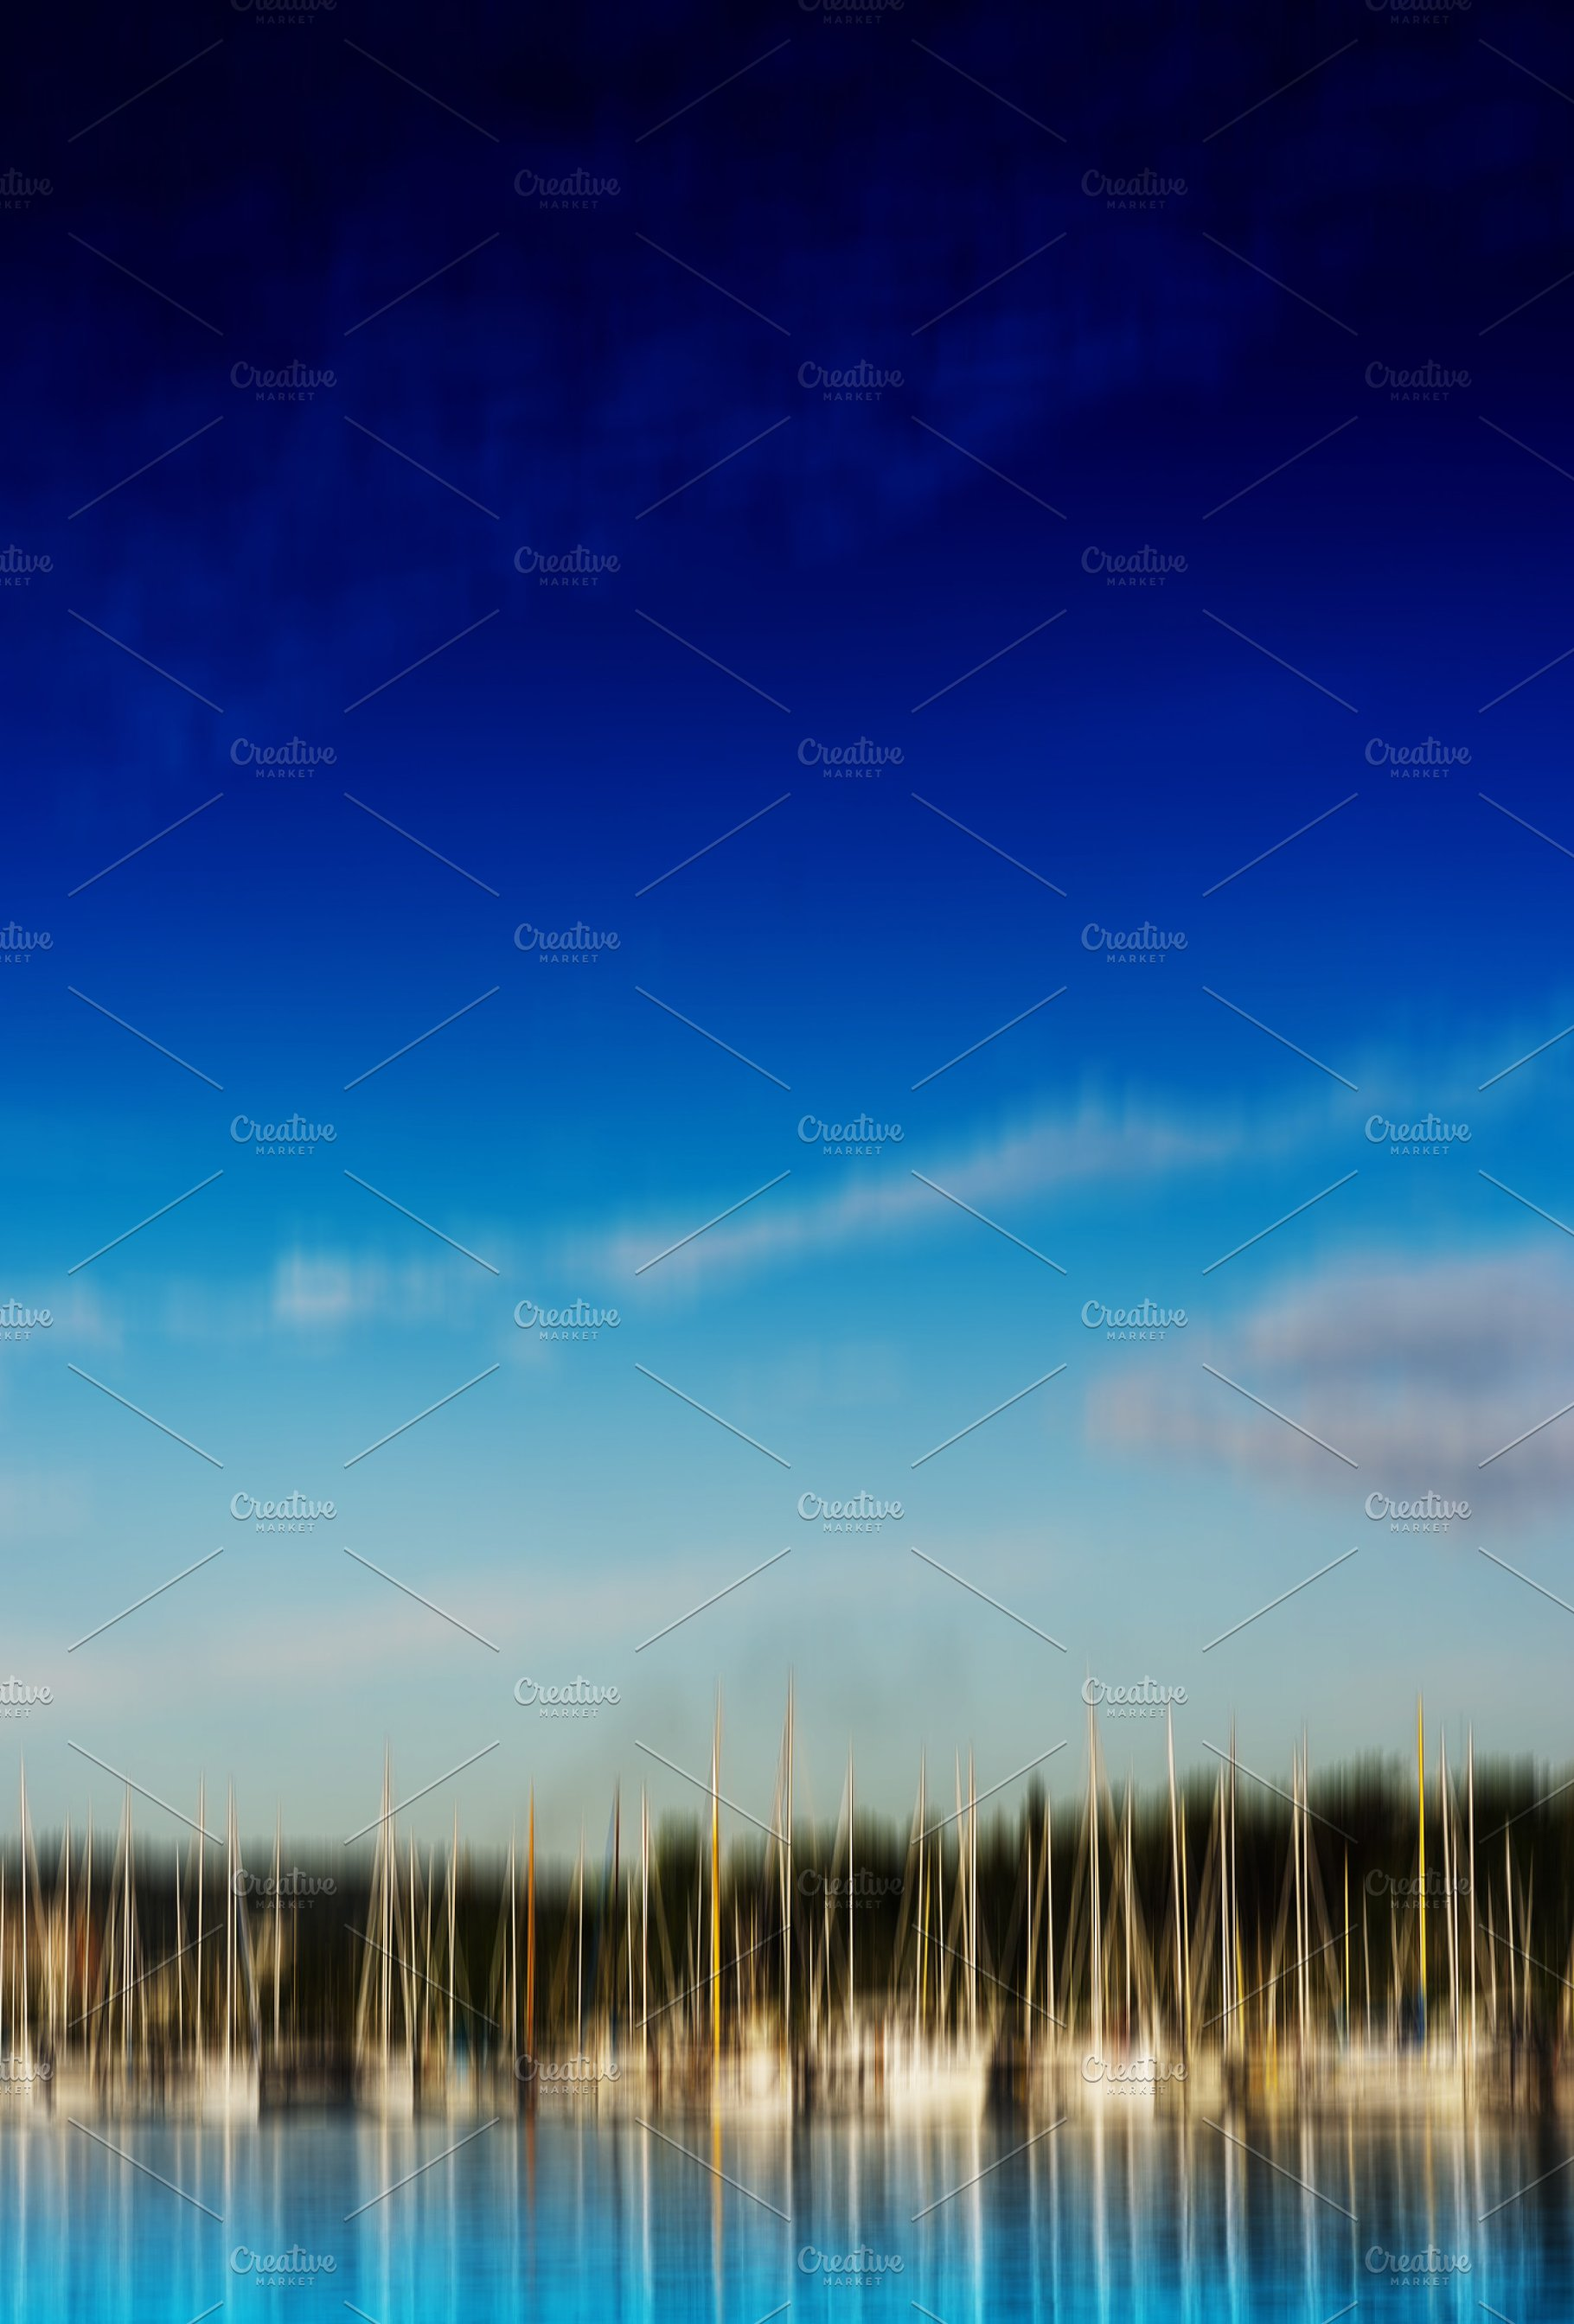 Vertical Motion Blur Yacht Club Background High Quality Abstract